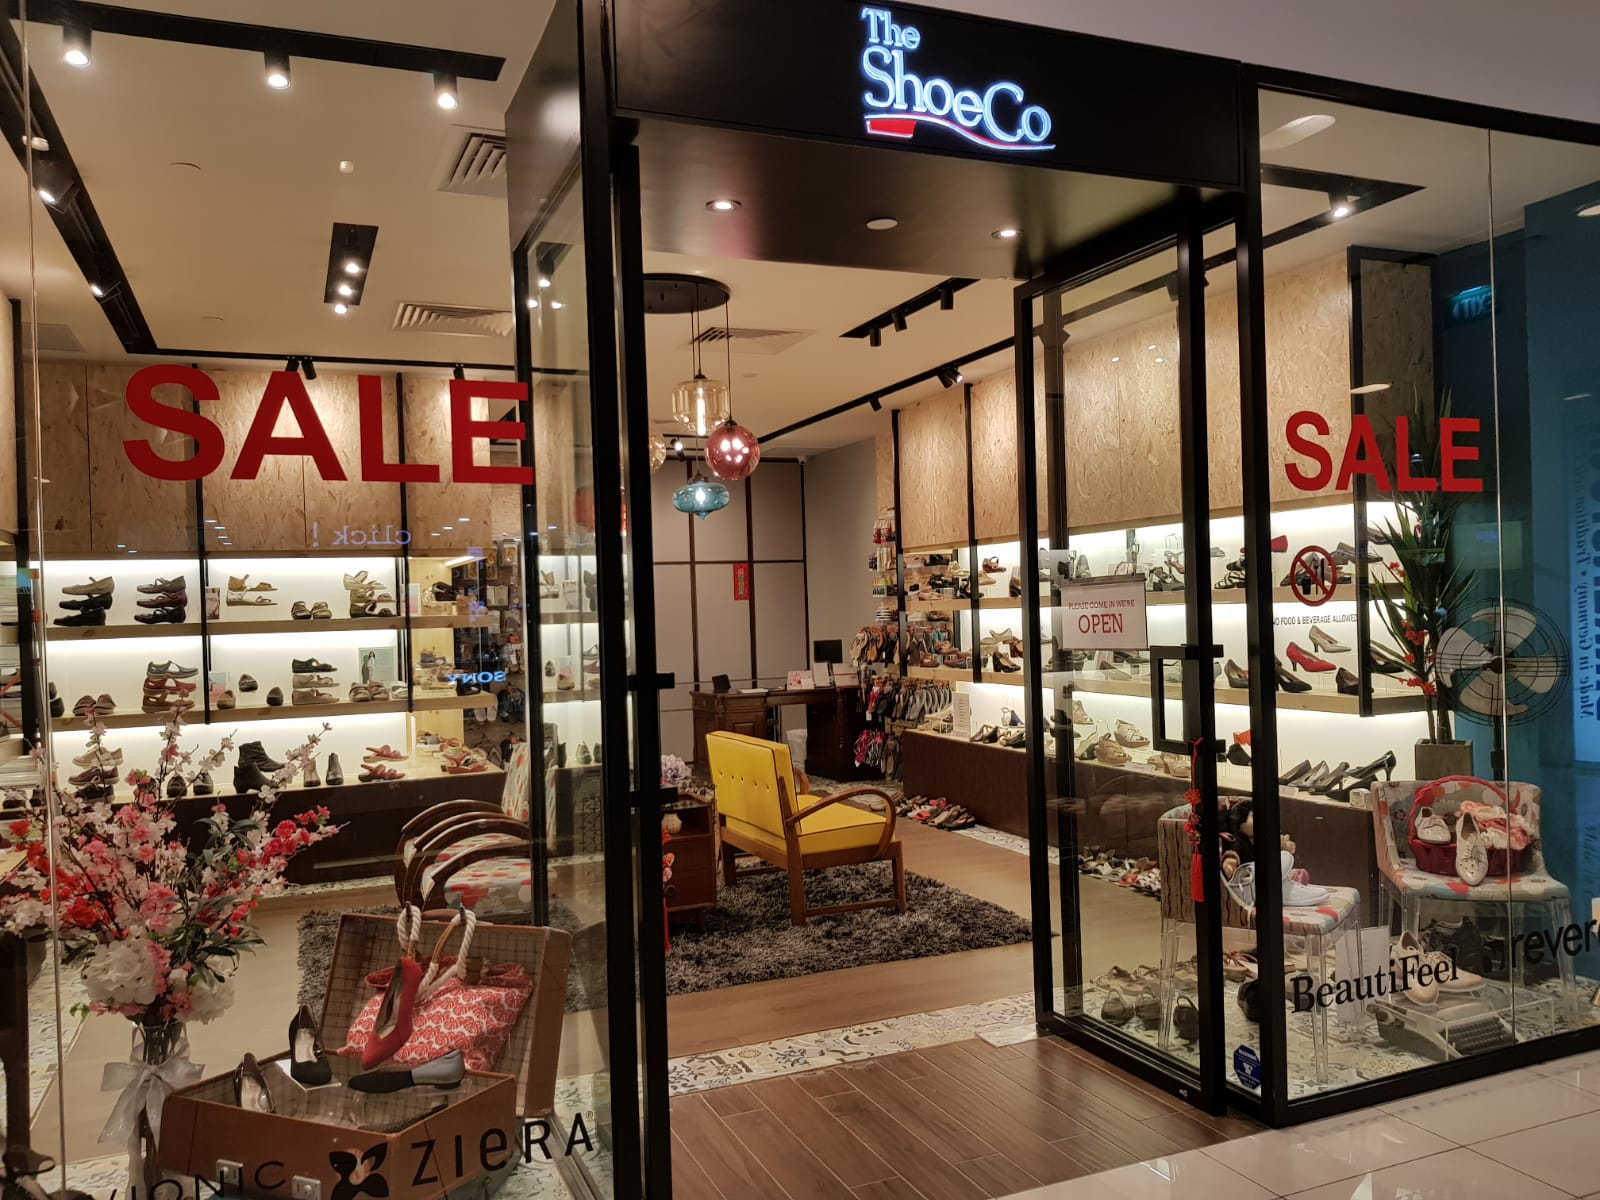 The ShoeCo   The Centrepoint Outlet